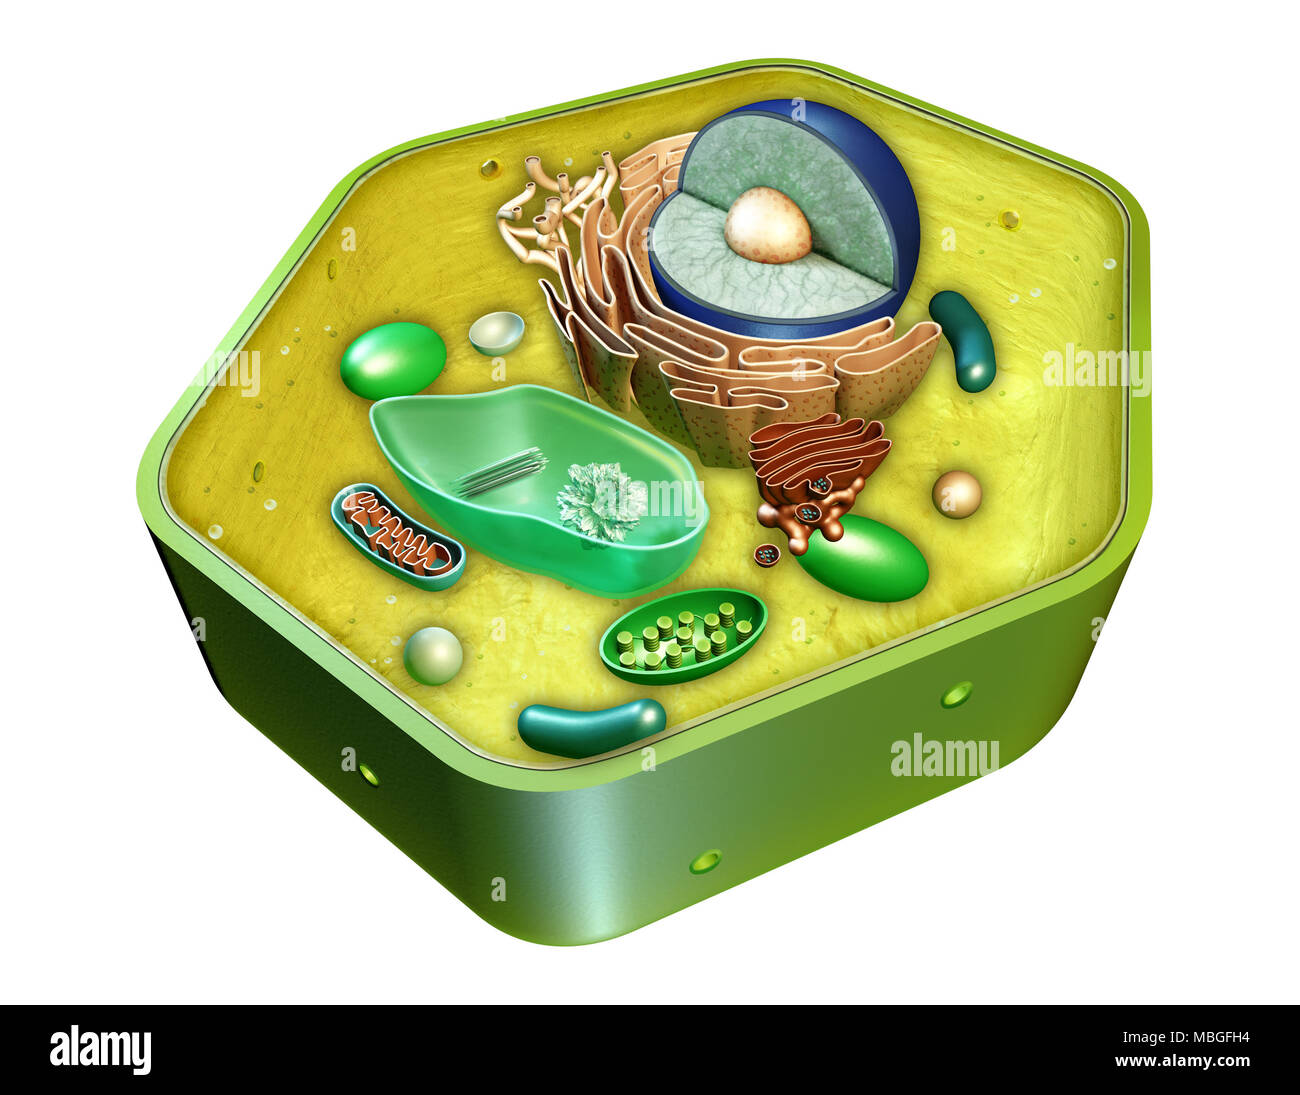 Plant Cell Chloroplast Stock Photos & Plant Cell Chloroplast Stock ...